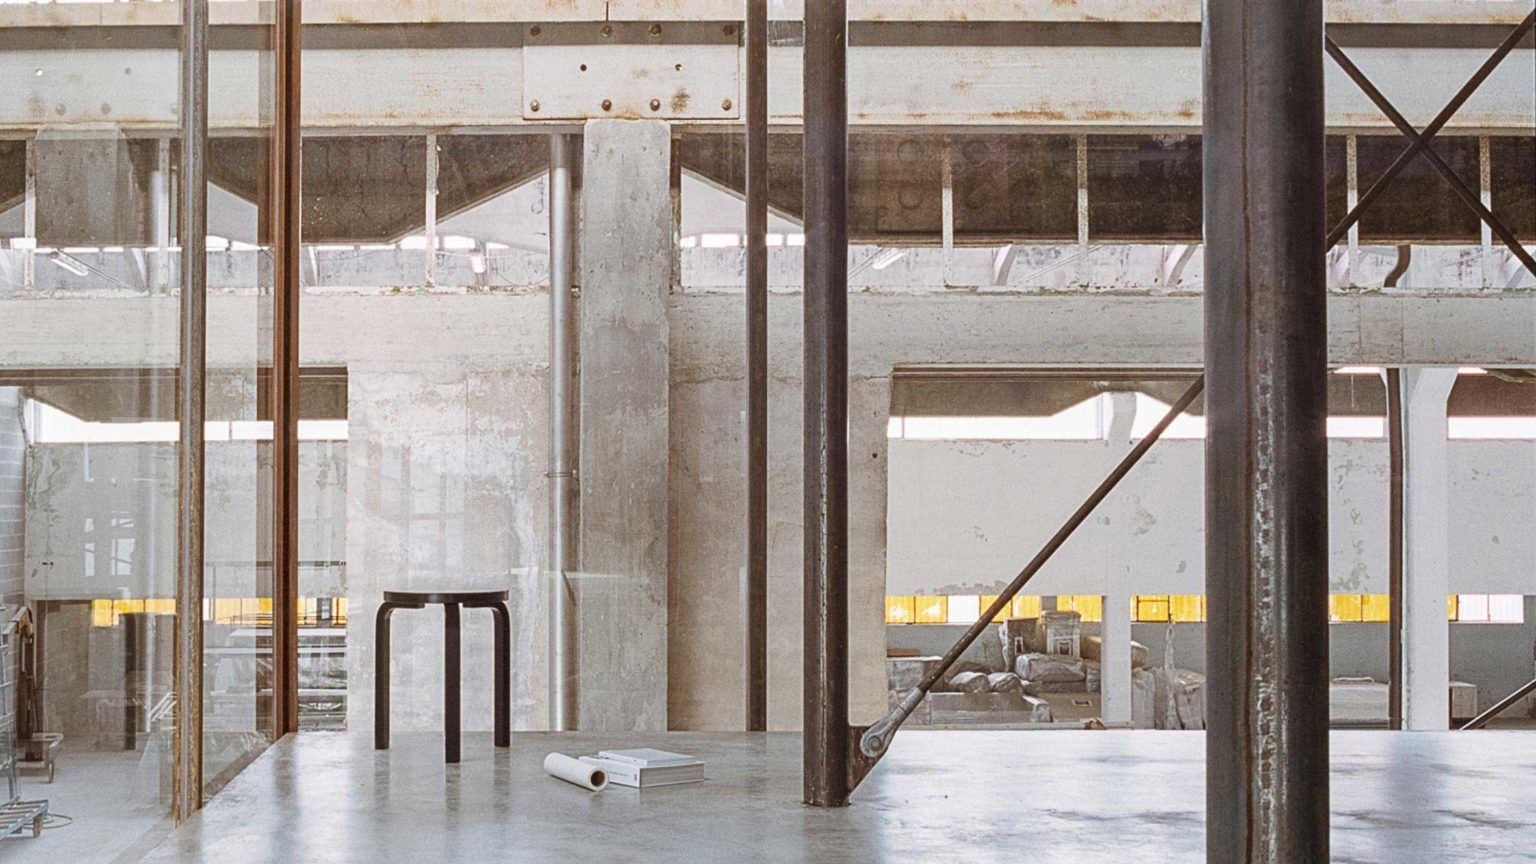 Abandoned Plumbing Factory Converted Into Architecture Studio Architecture Concrete Staircase Glass Boxes